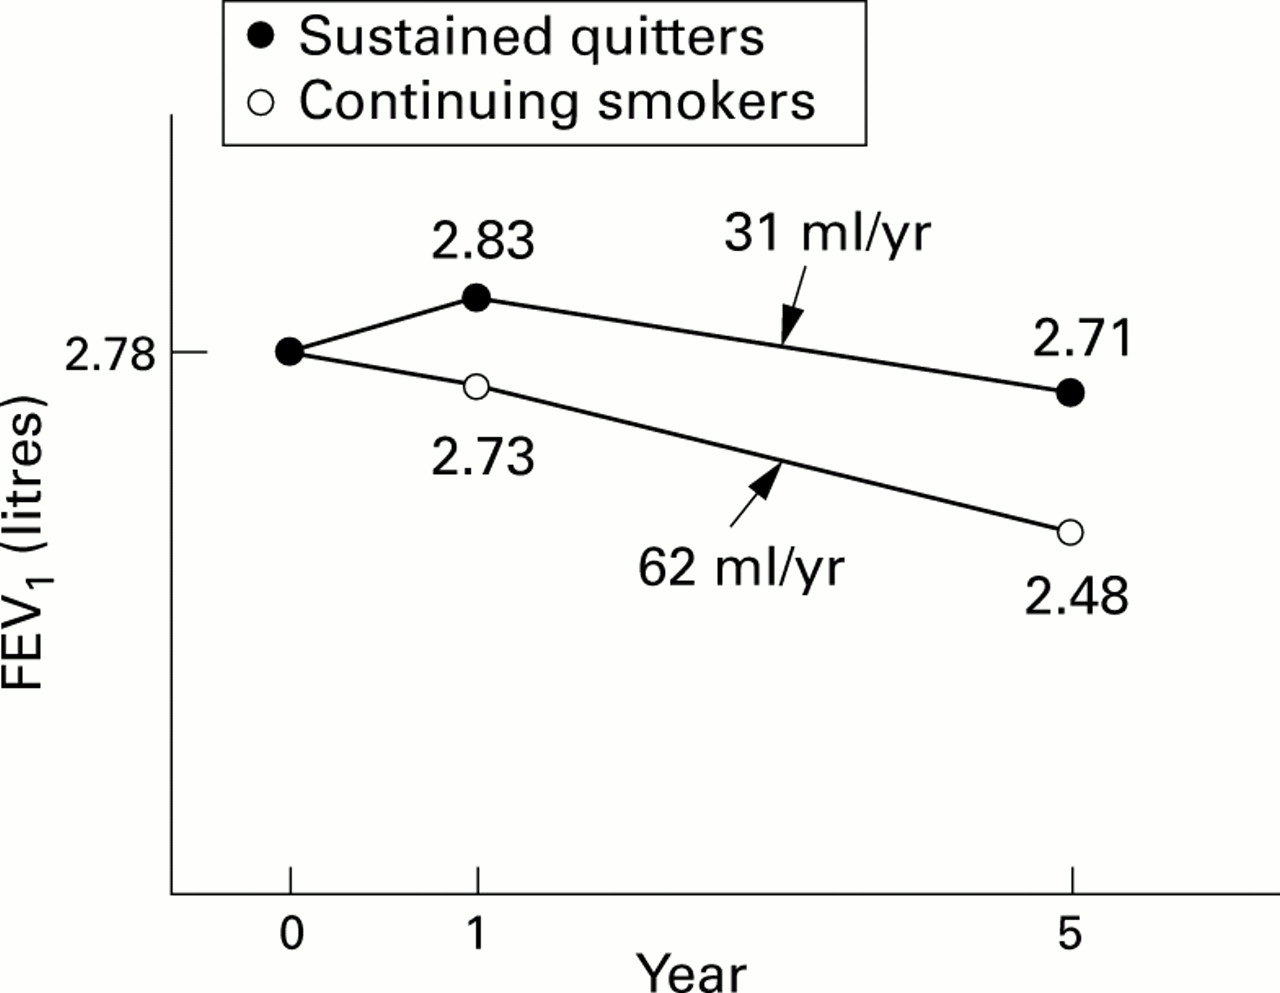 Smoking cessation: effects on symptoms, spirometry and future trends